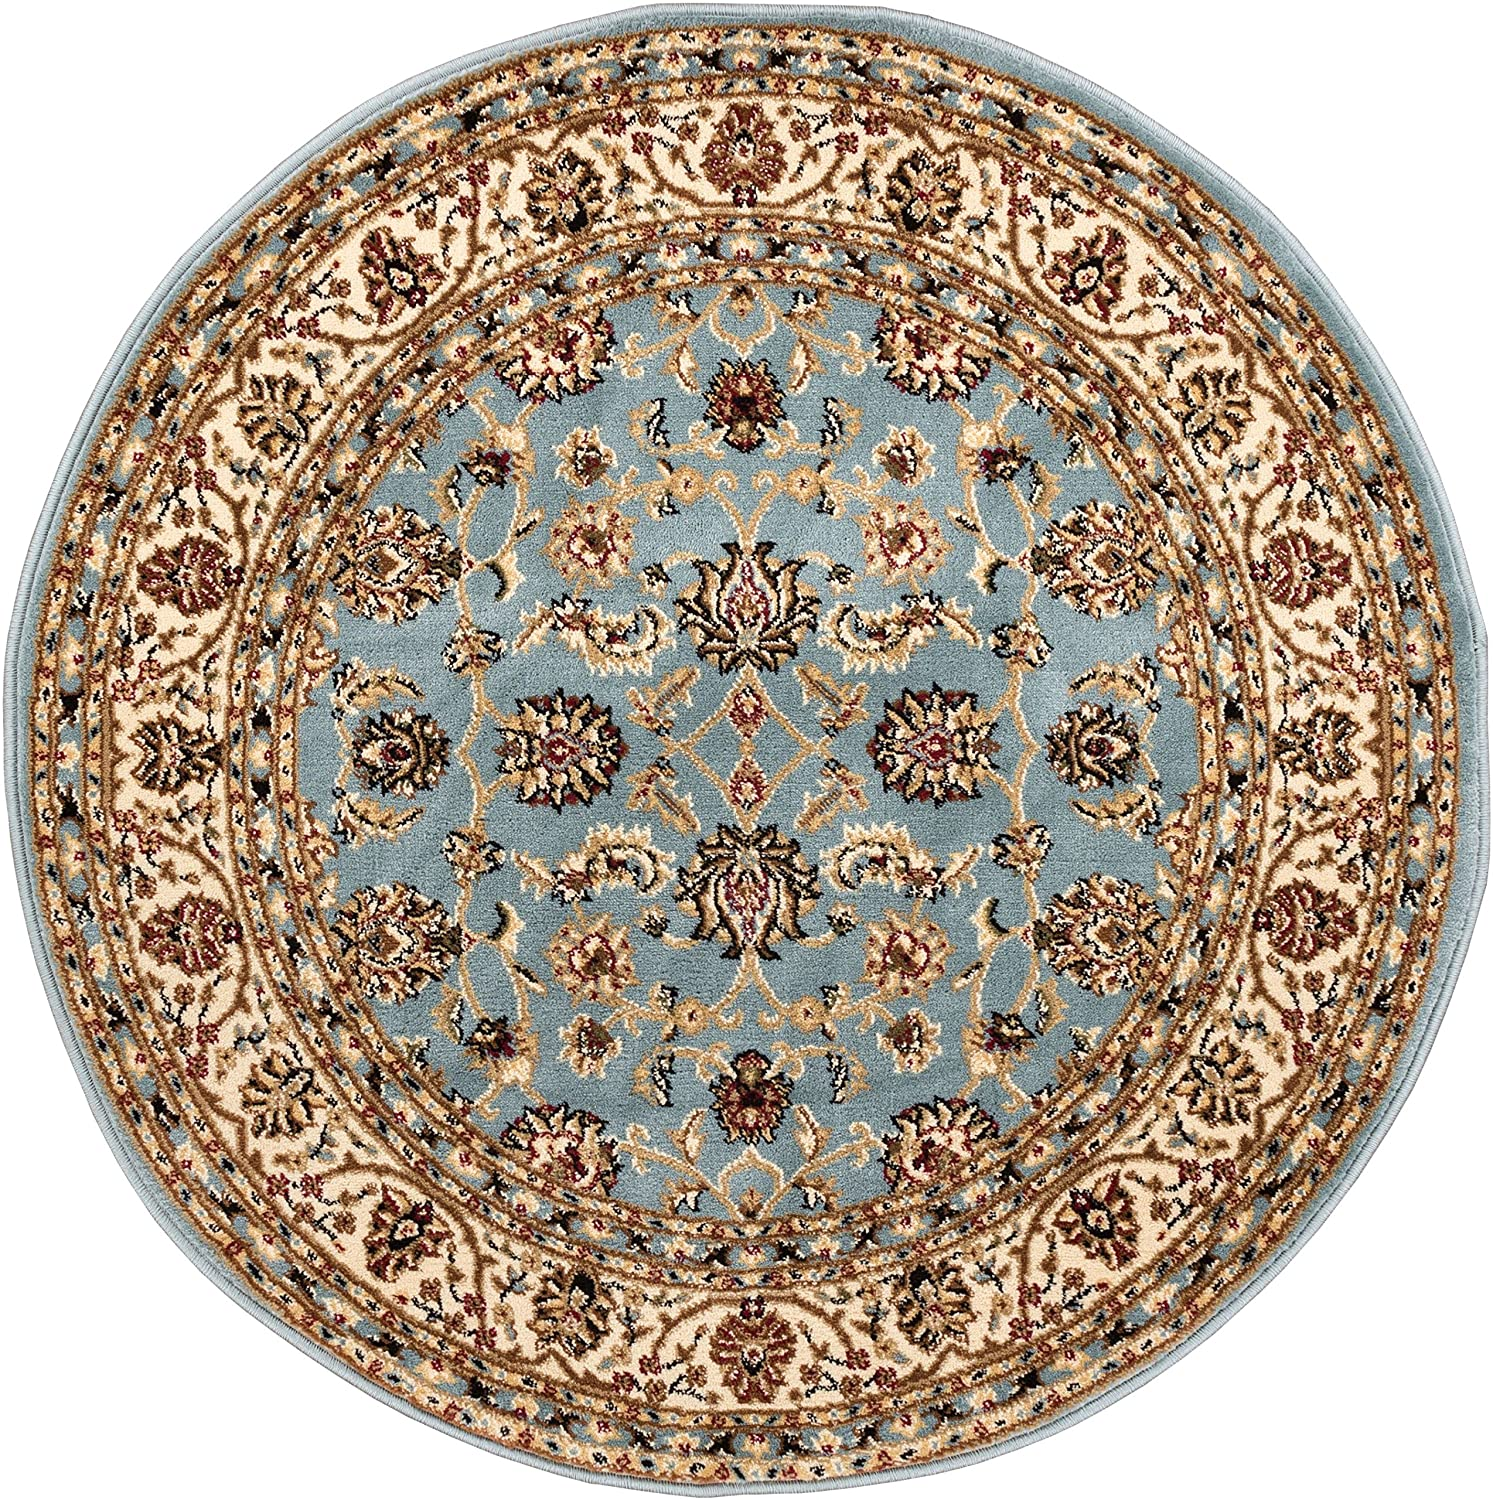 Well Woven Barclay Sarouk Light Blue Traditional Area Rug 3'11